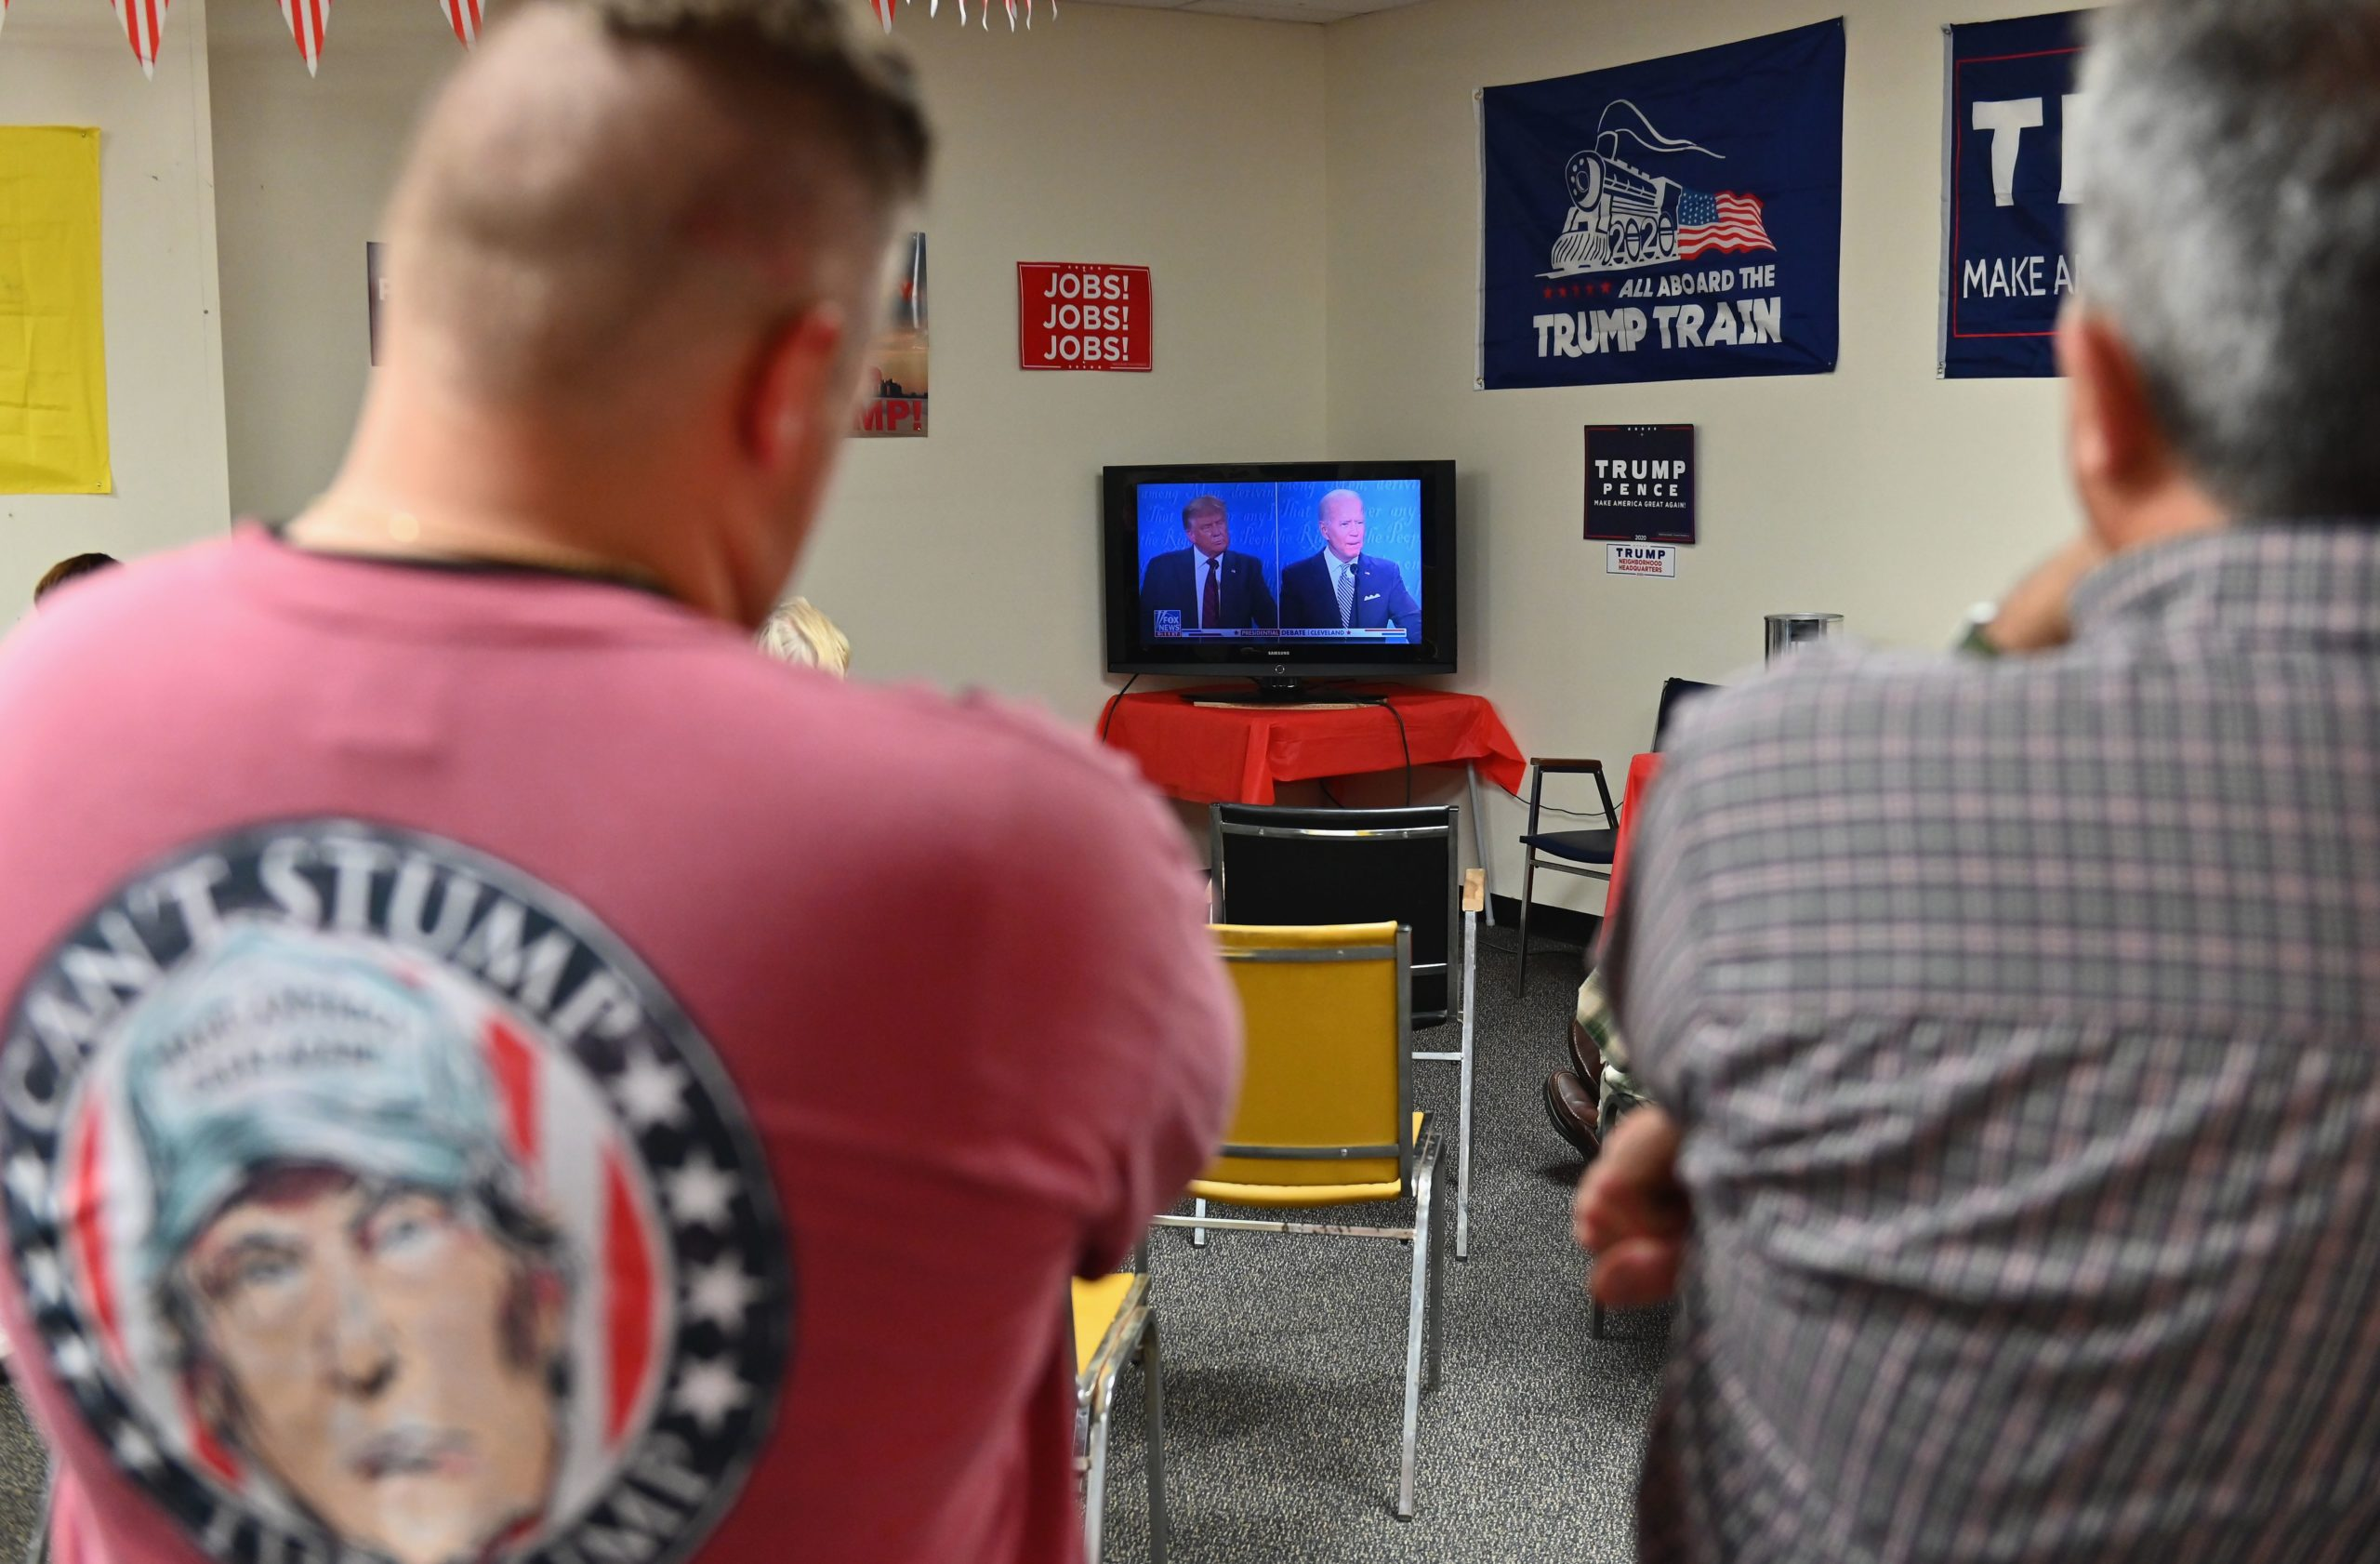 Trump supporters watch the first presidential debate between President Donald Trump and Democratic presidential nominee Joe Biden on September 29, 2020 in Old Forge, near Scranton, Pennsylvania. (Angela Weiss/AFP via Getty Images)